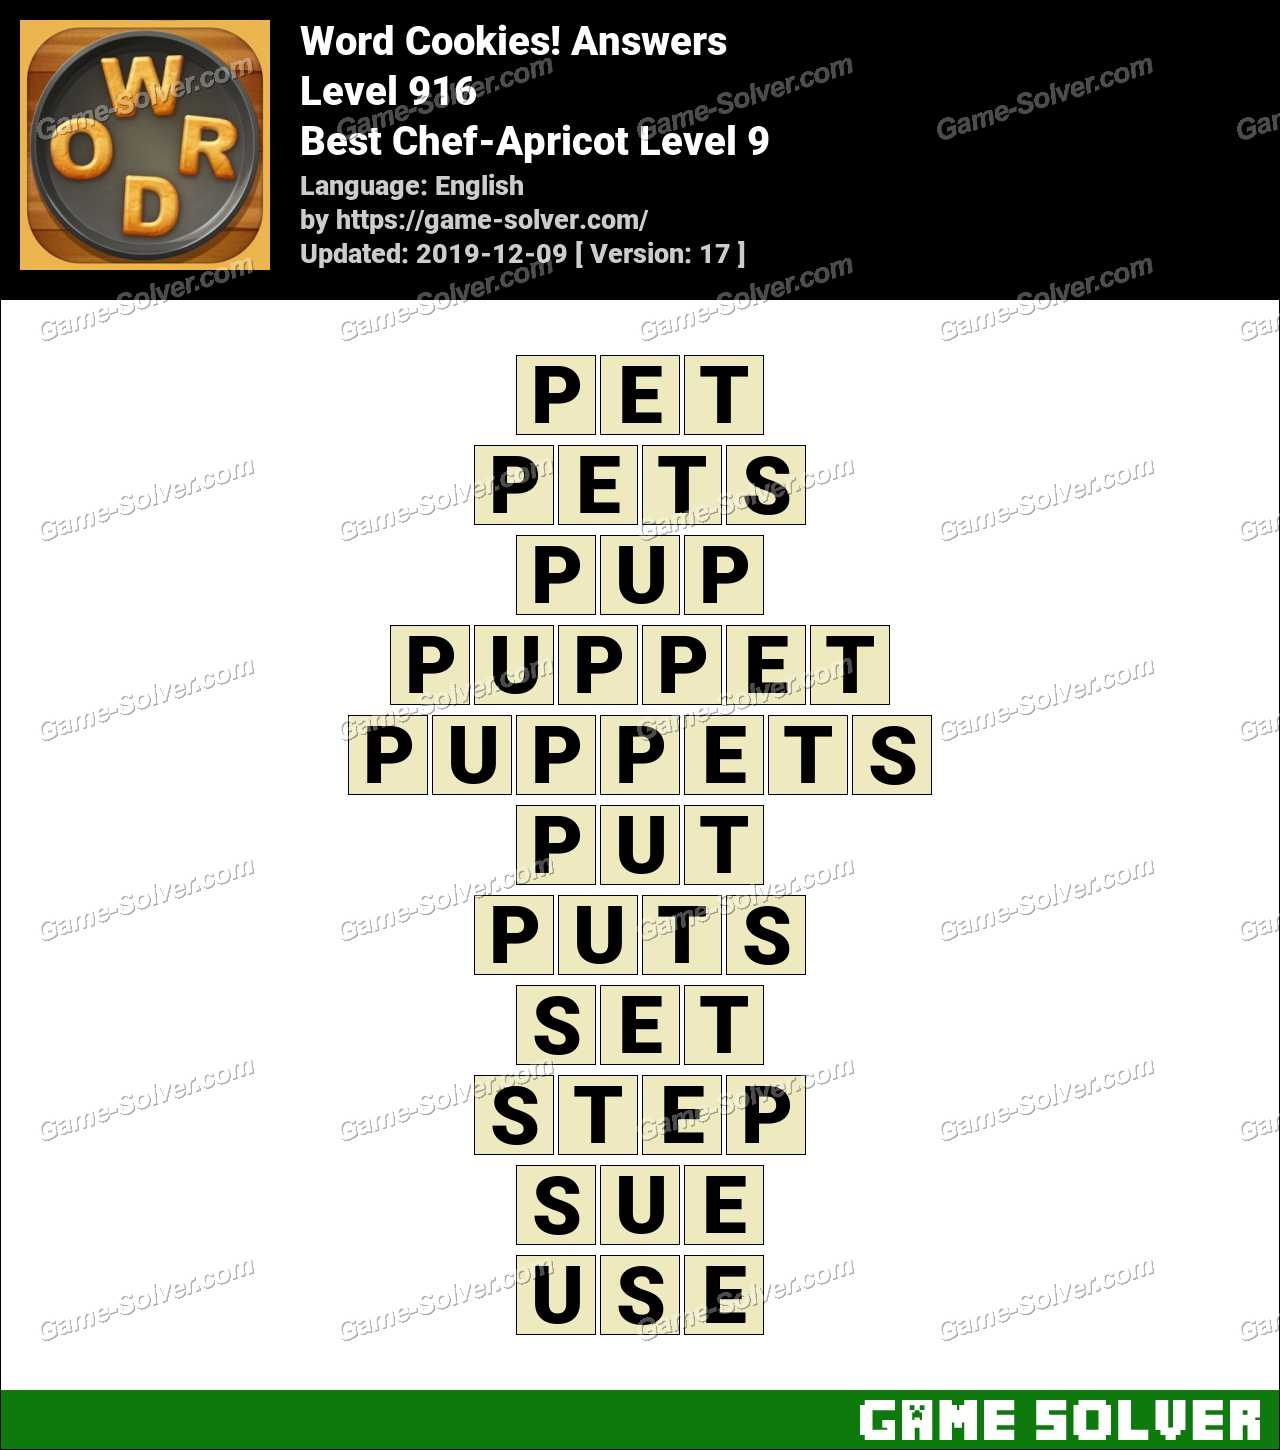 Word Cookies Best Chef-Apricot Level 9 Answers